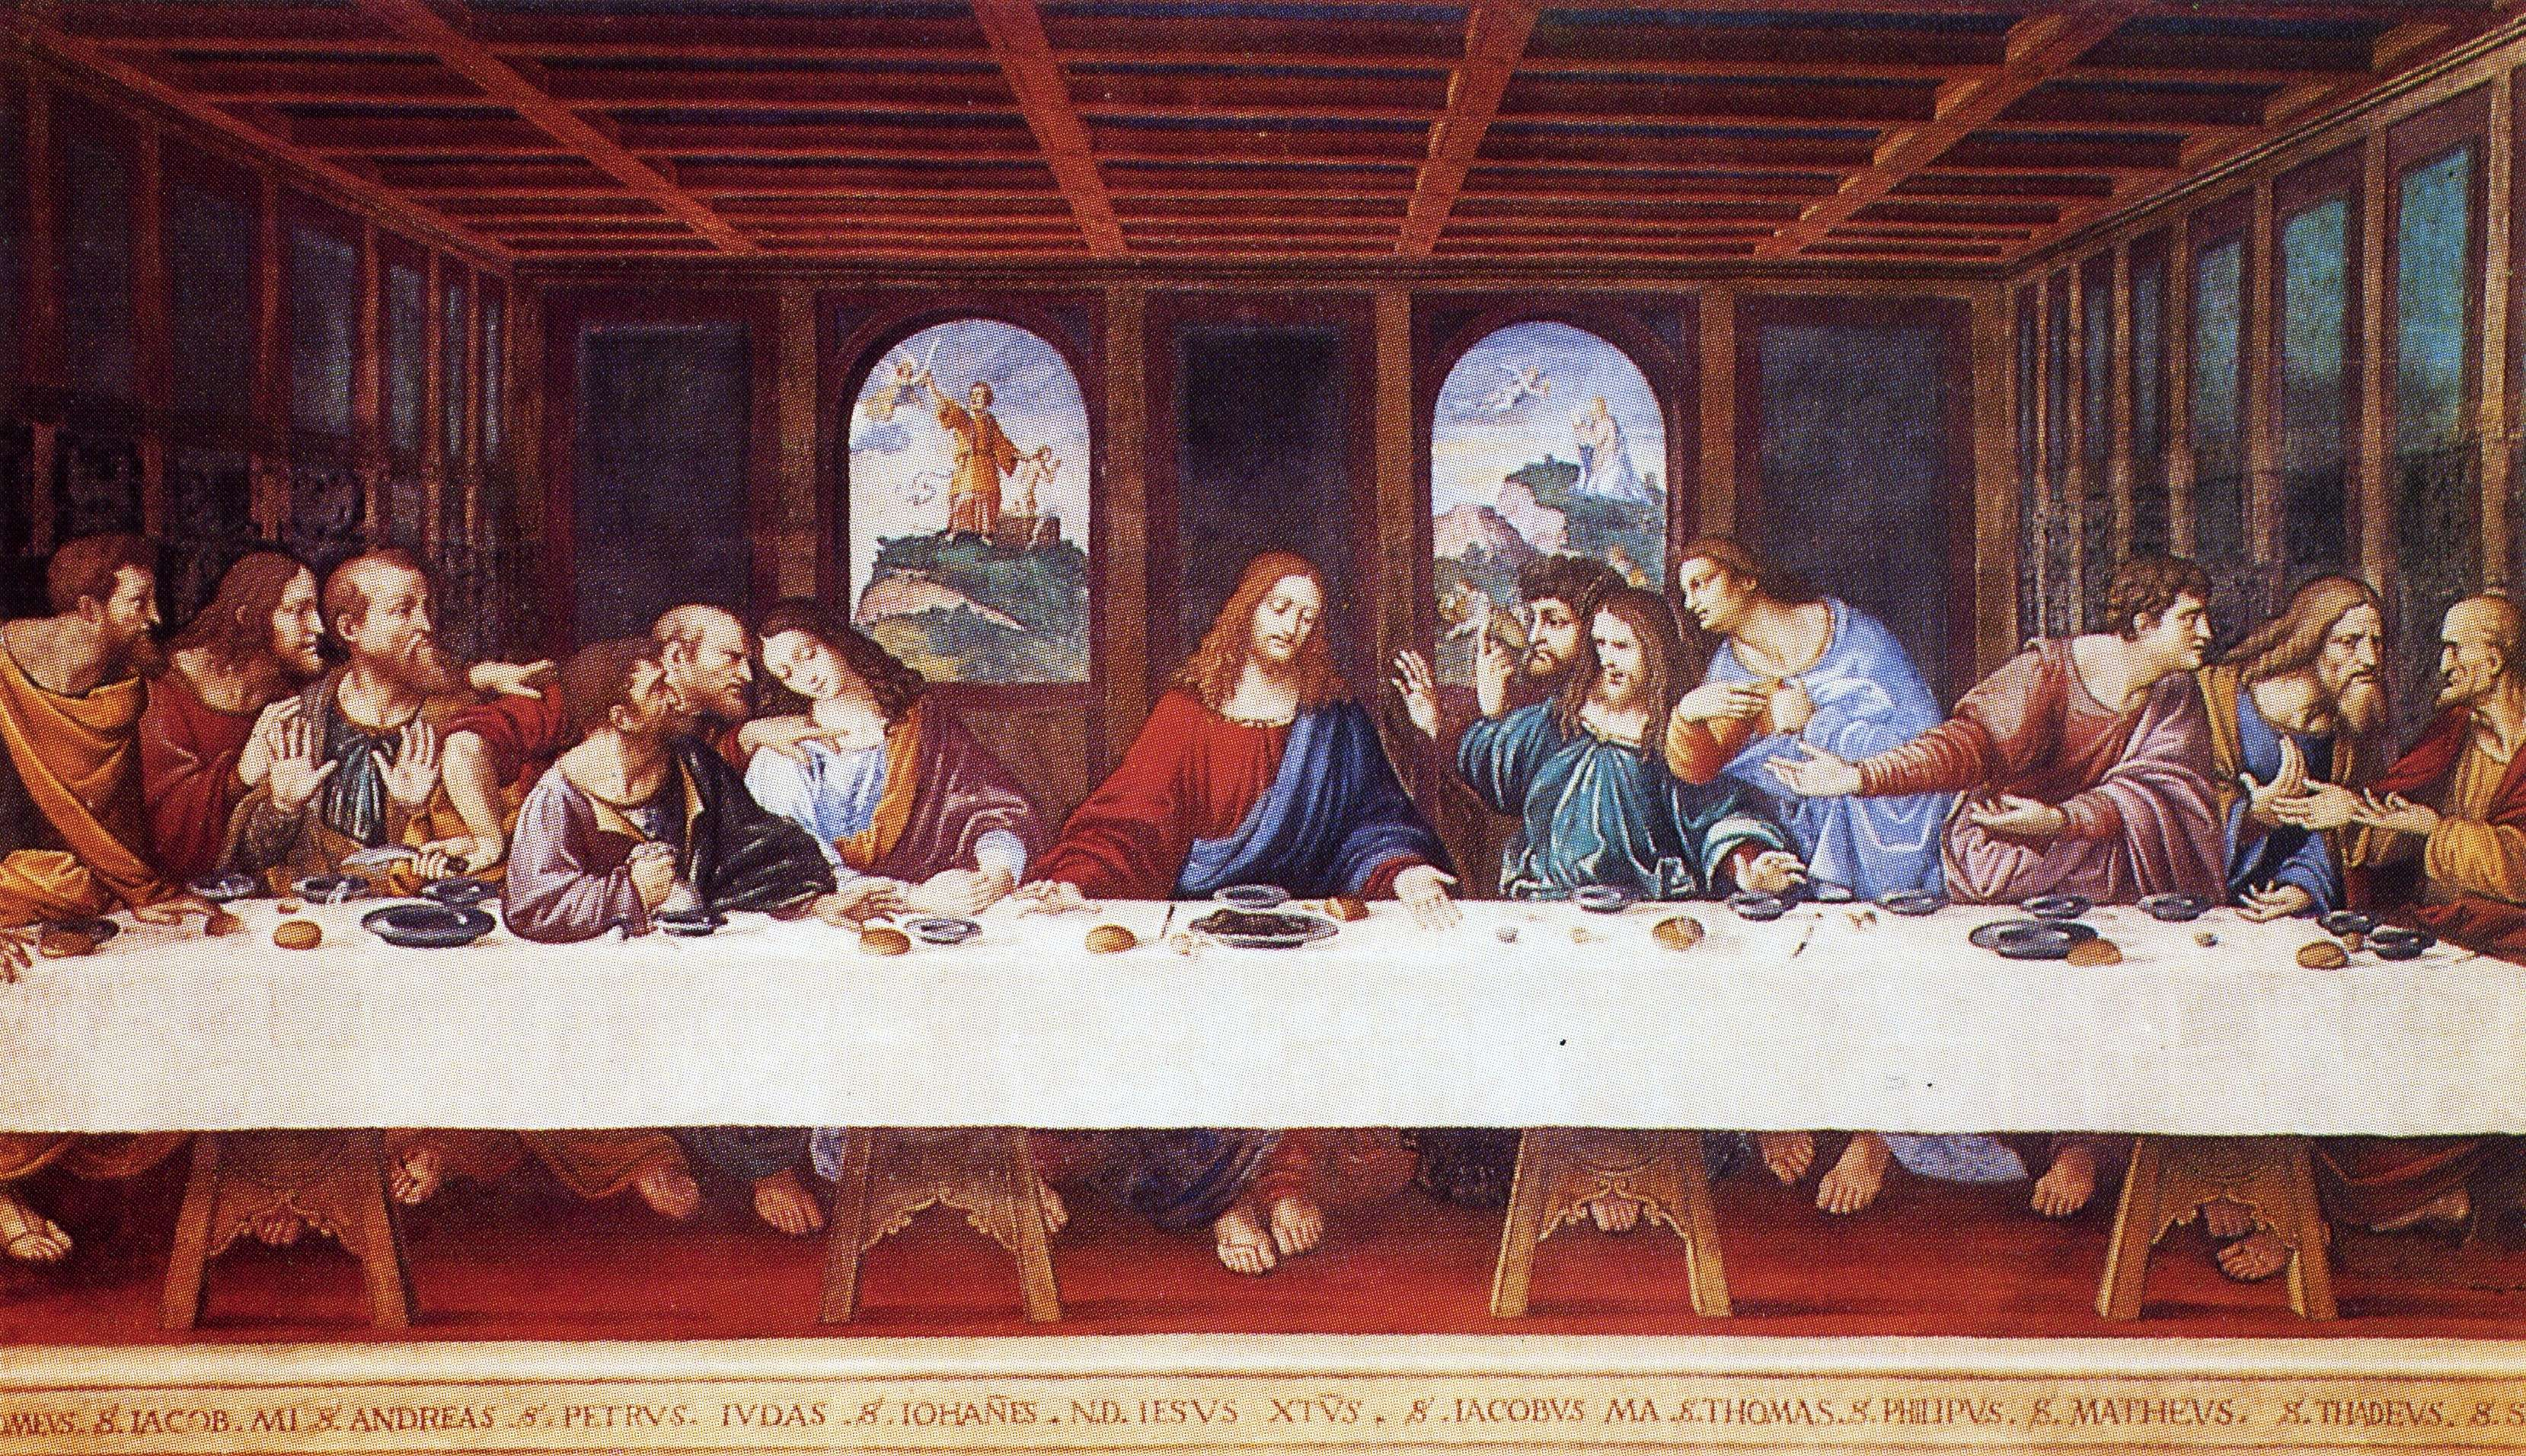 the last supper by leonardo da Book your skip-the-line tickets and guided tours of the last supper of leonardo da vinci in milan now admire one of the world's most famous masterpieces painted by.